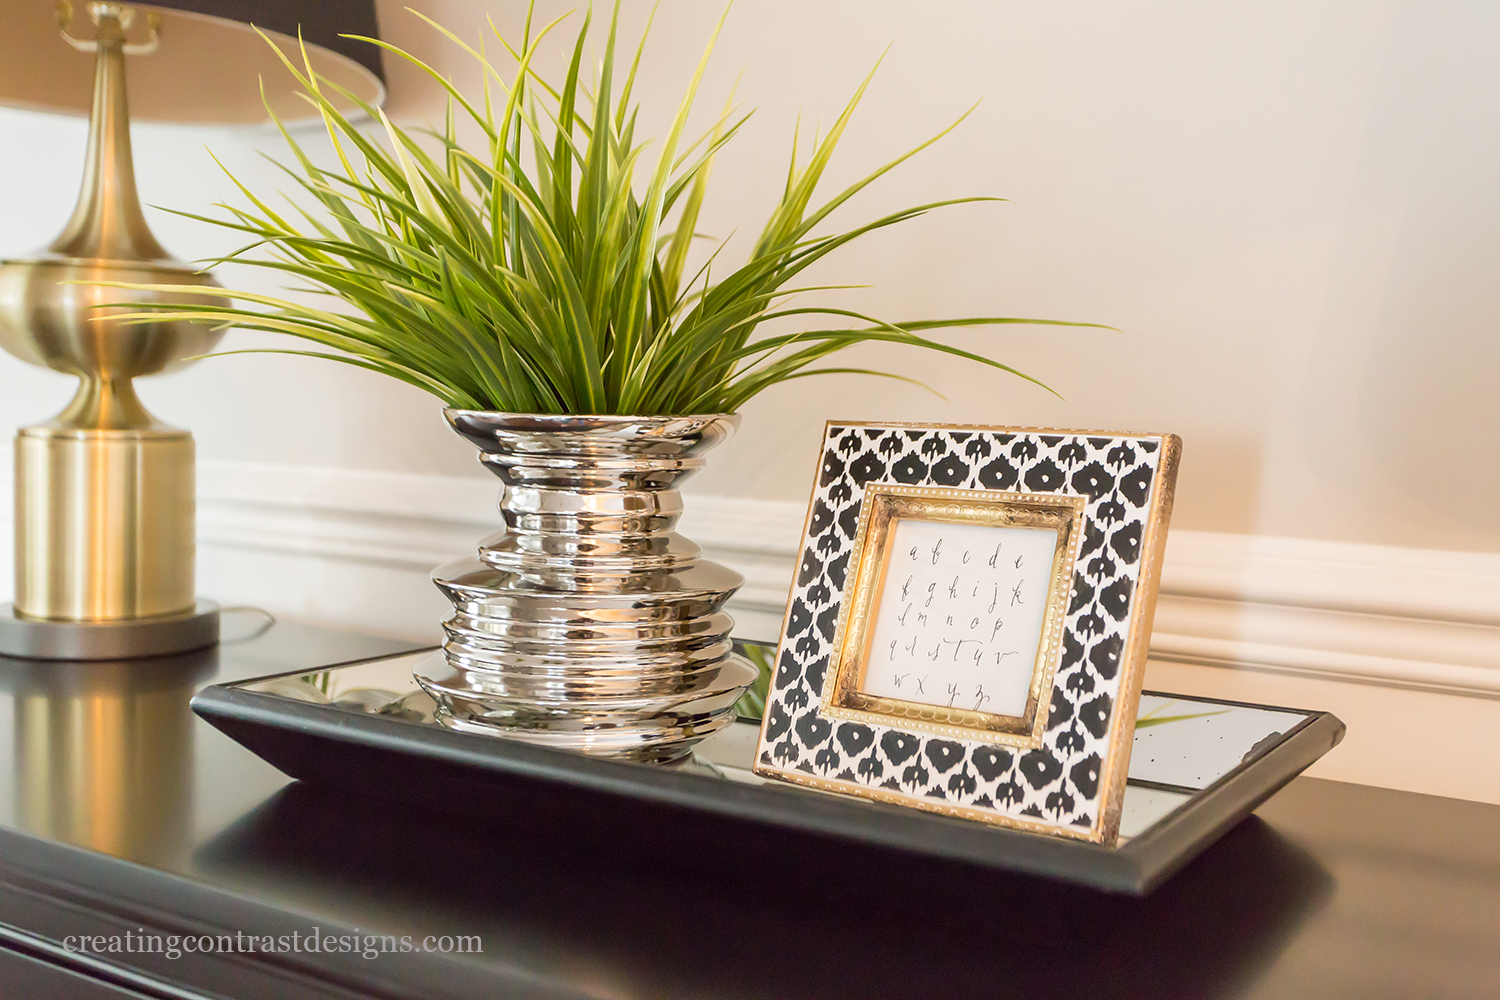 Vignette on dresser with gold accents.